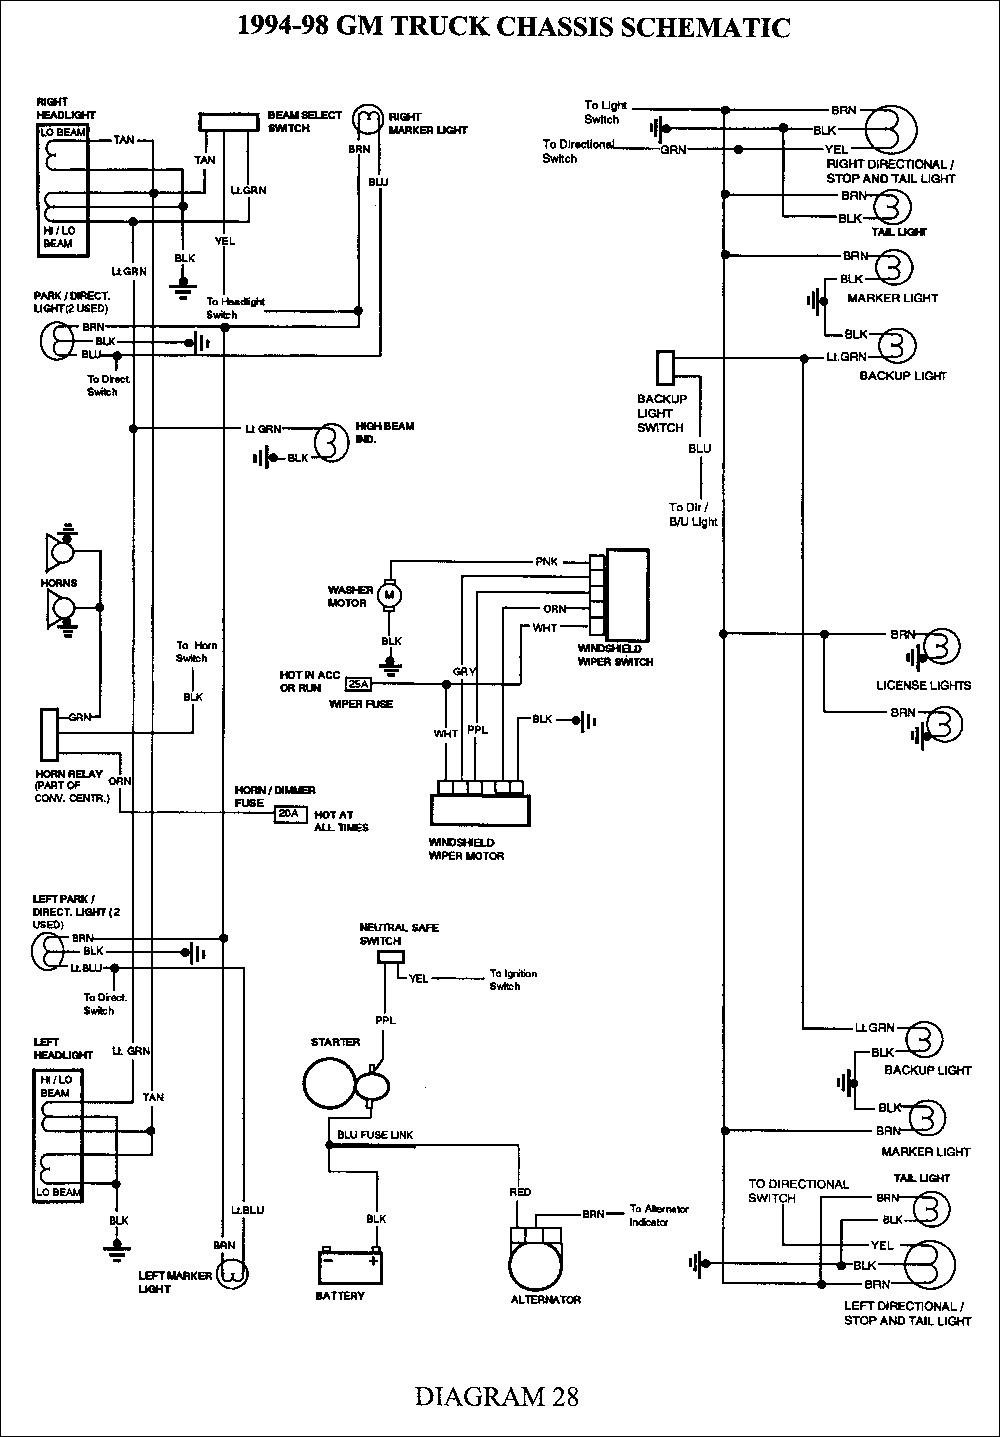 2003 Chevy Truck Tail Light Wiring - wiring diagram on the net on